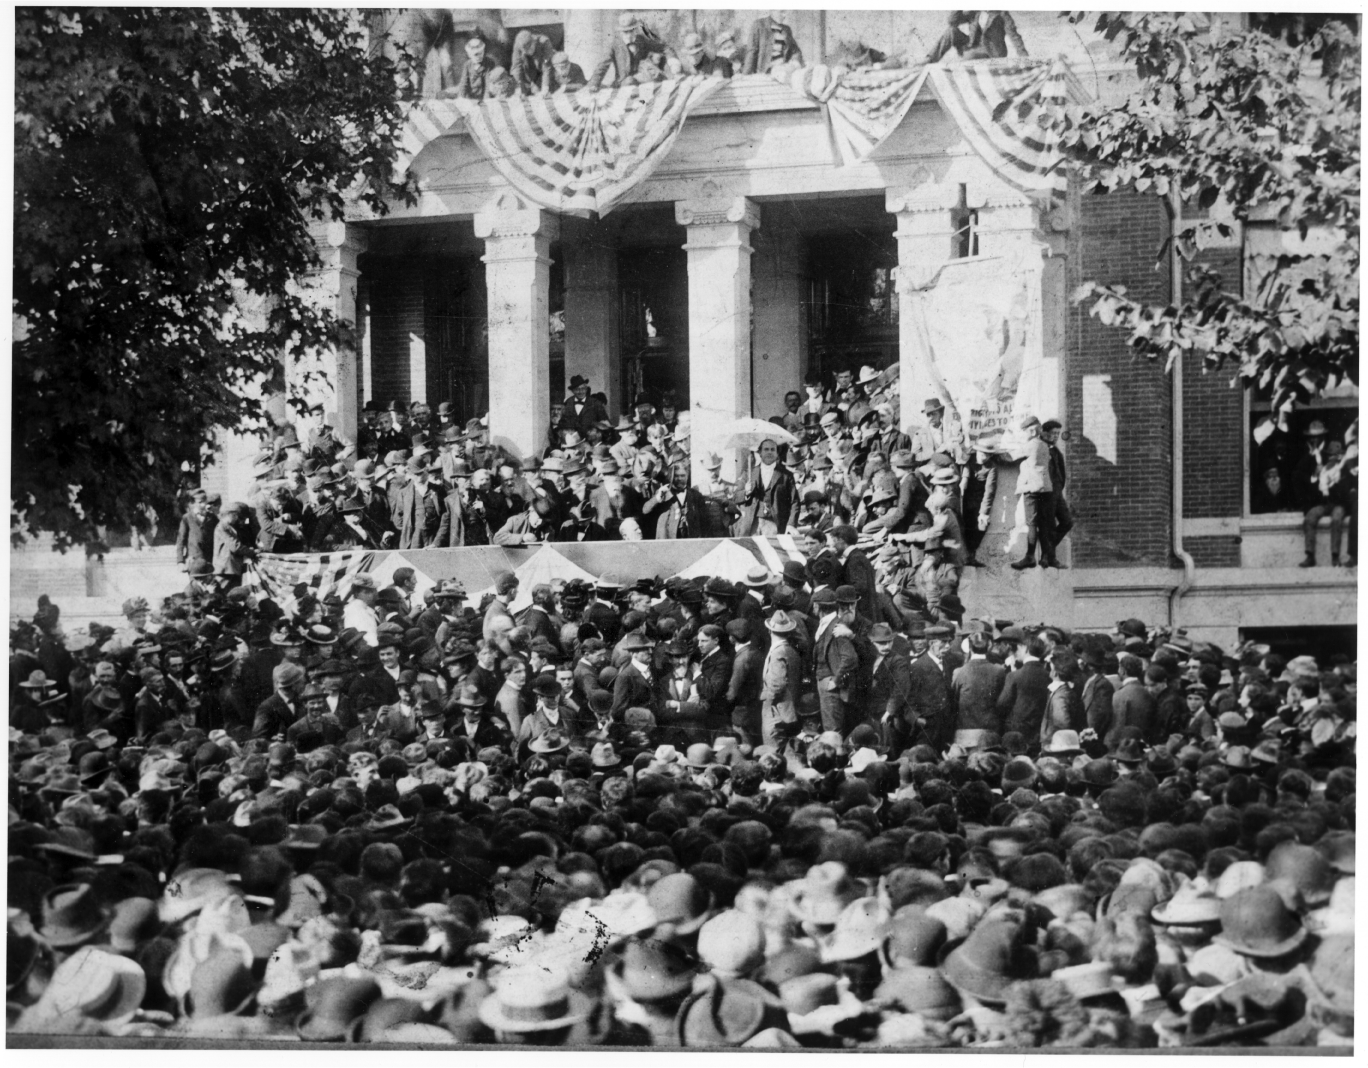 Presidential candidate William Jennings Bryan delivers a campaign speech at the Ann Arbor Courthouse image